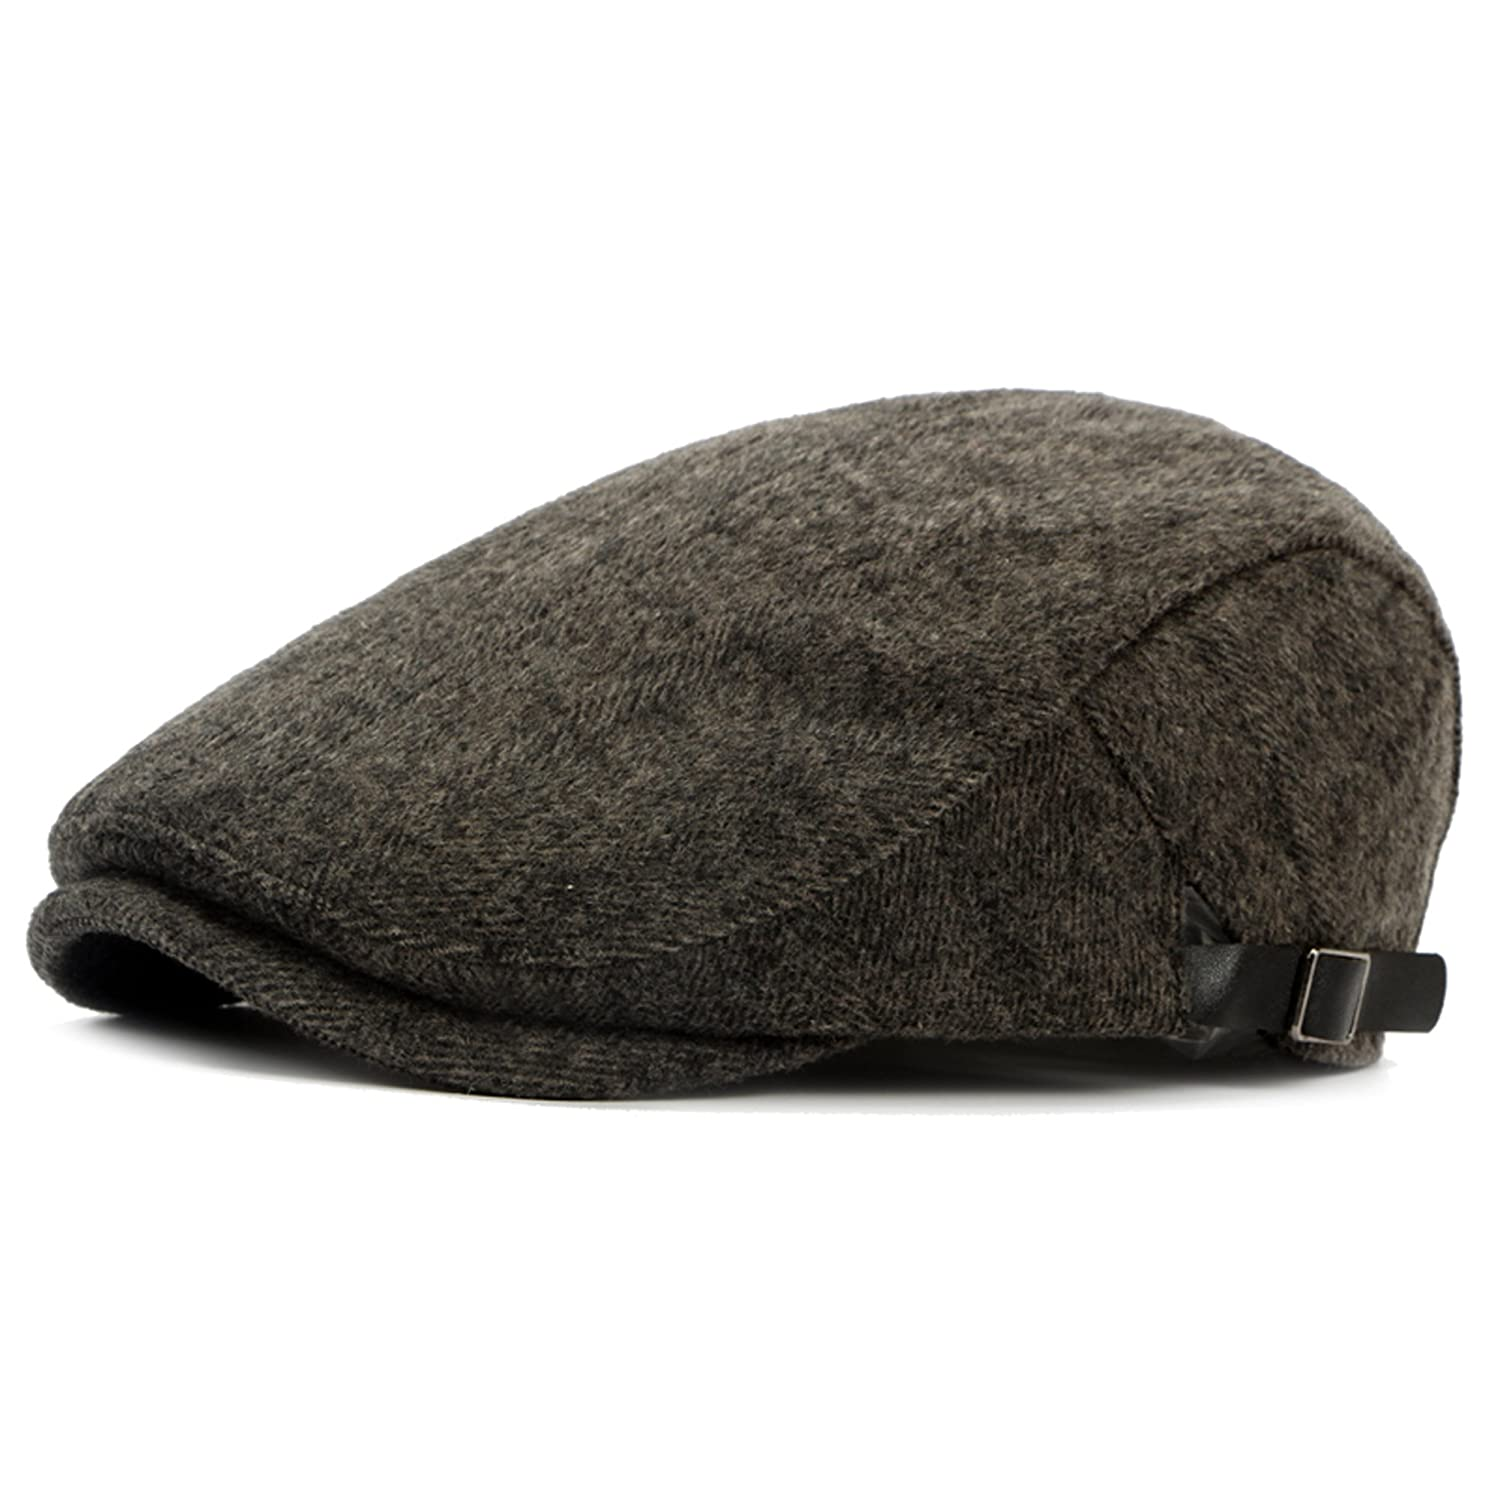 f062e8f80c7e0 Color City Mens Warm Wool Tweed newsboy Gatsby IVY Cap Golf Cabbie Driving  Winter Hat at Amazon Men s Clothing store